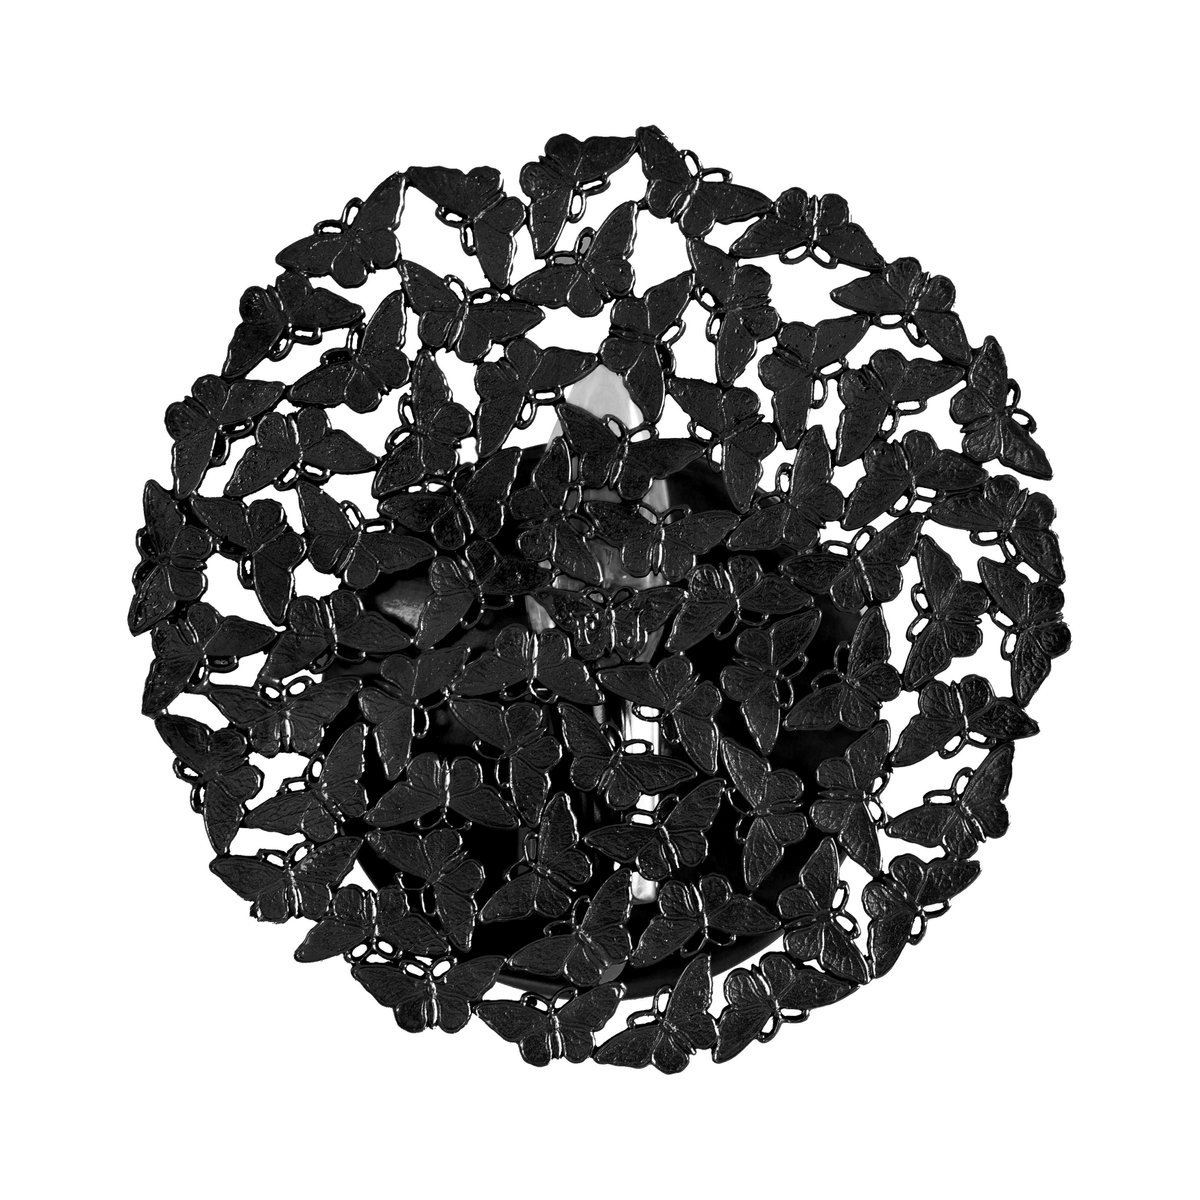 Johnnie Blackened Brass Lost Wax Cast Butterfly Wall Sconce By Fred Juul For Sale At Pamono